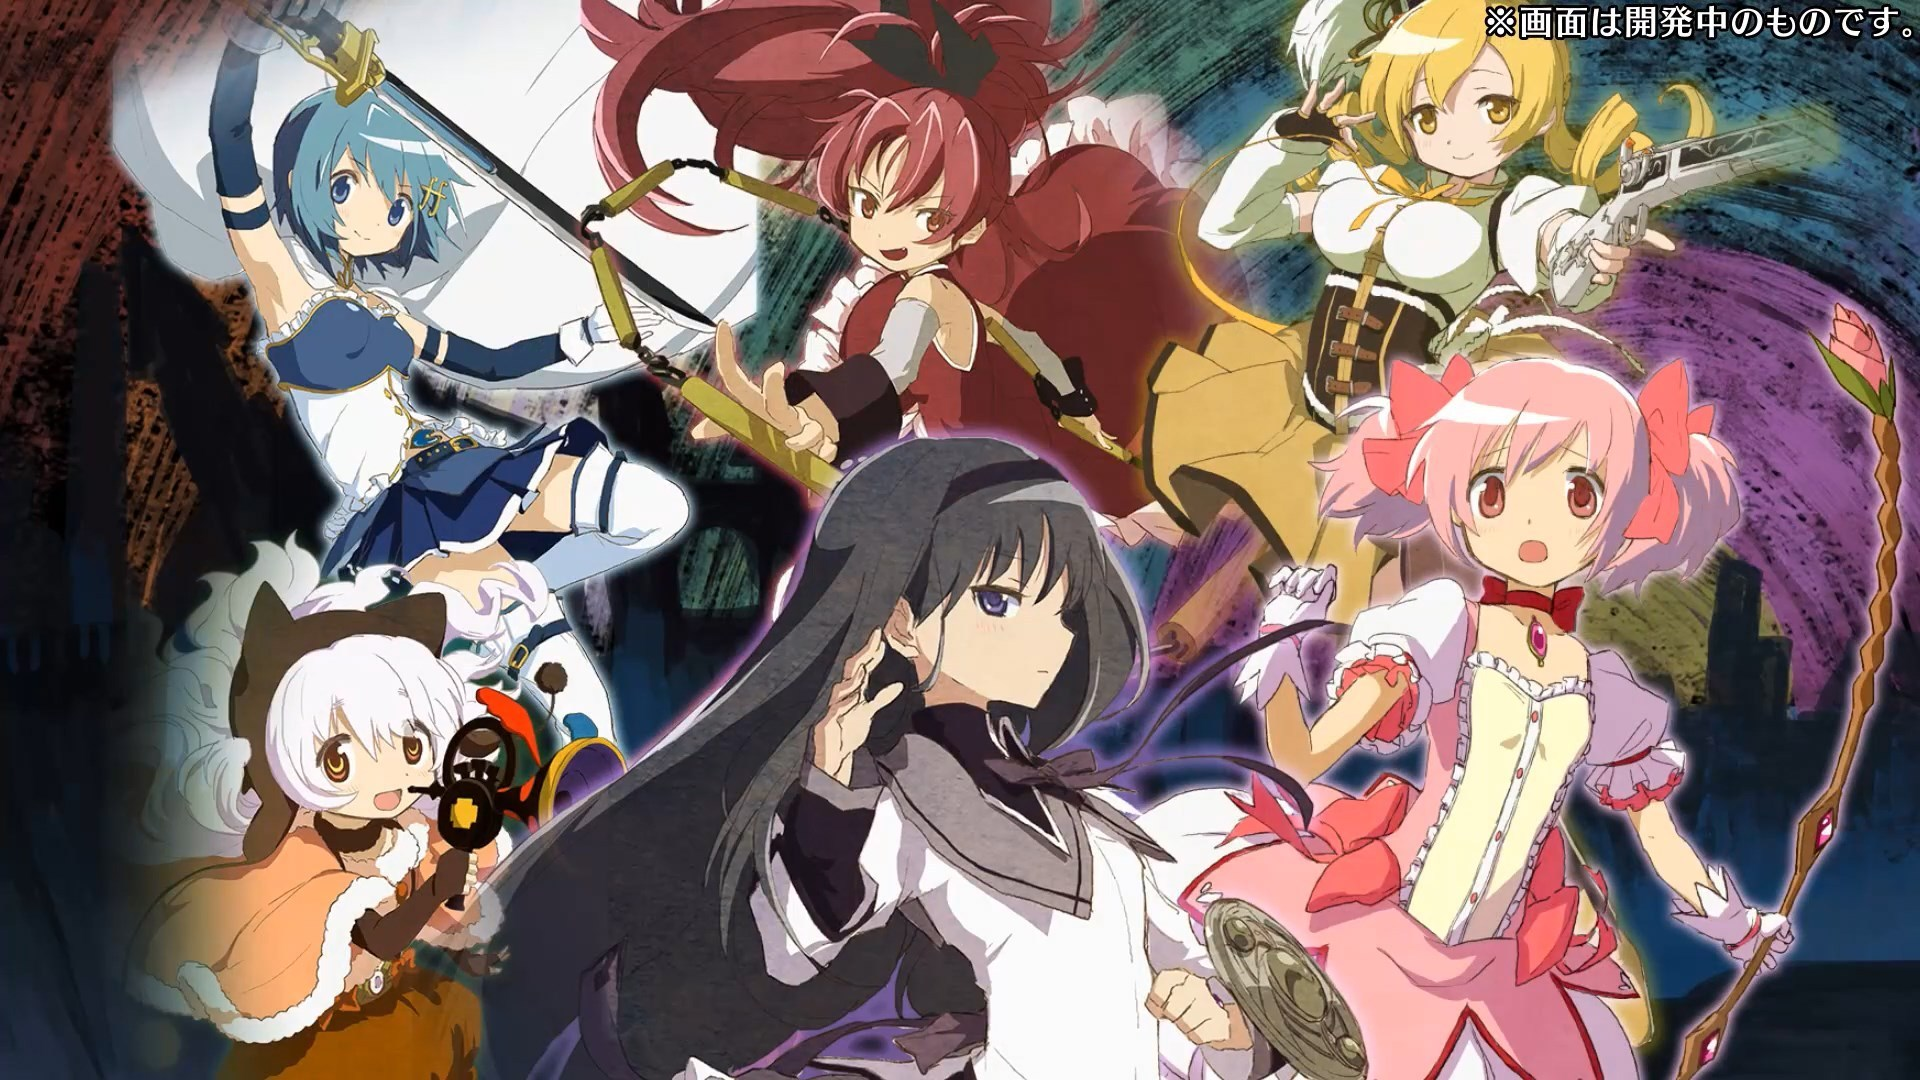 Puella-Magi-Madoka-Magica-X-Chain-Chronicle-Collaboration-New-Trailer